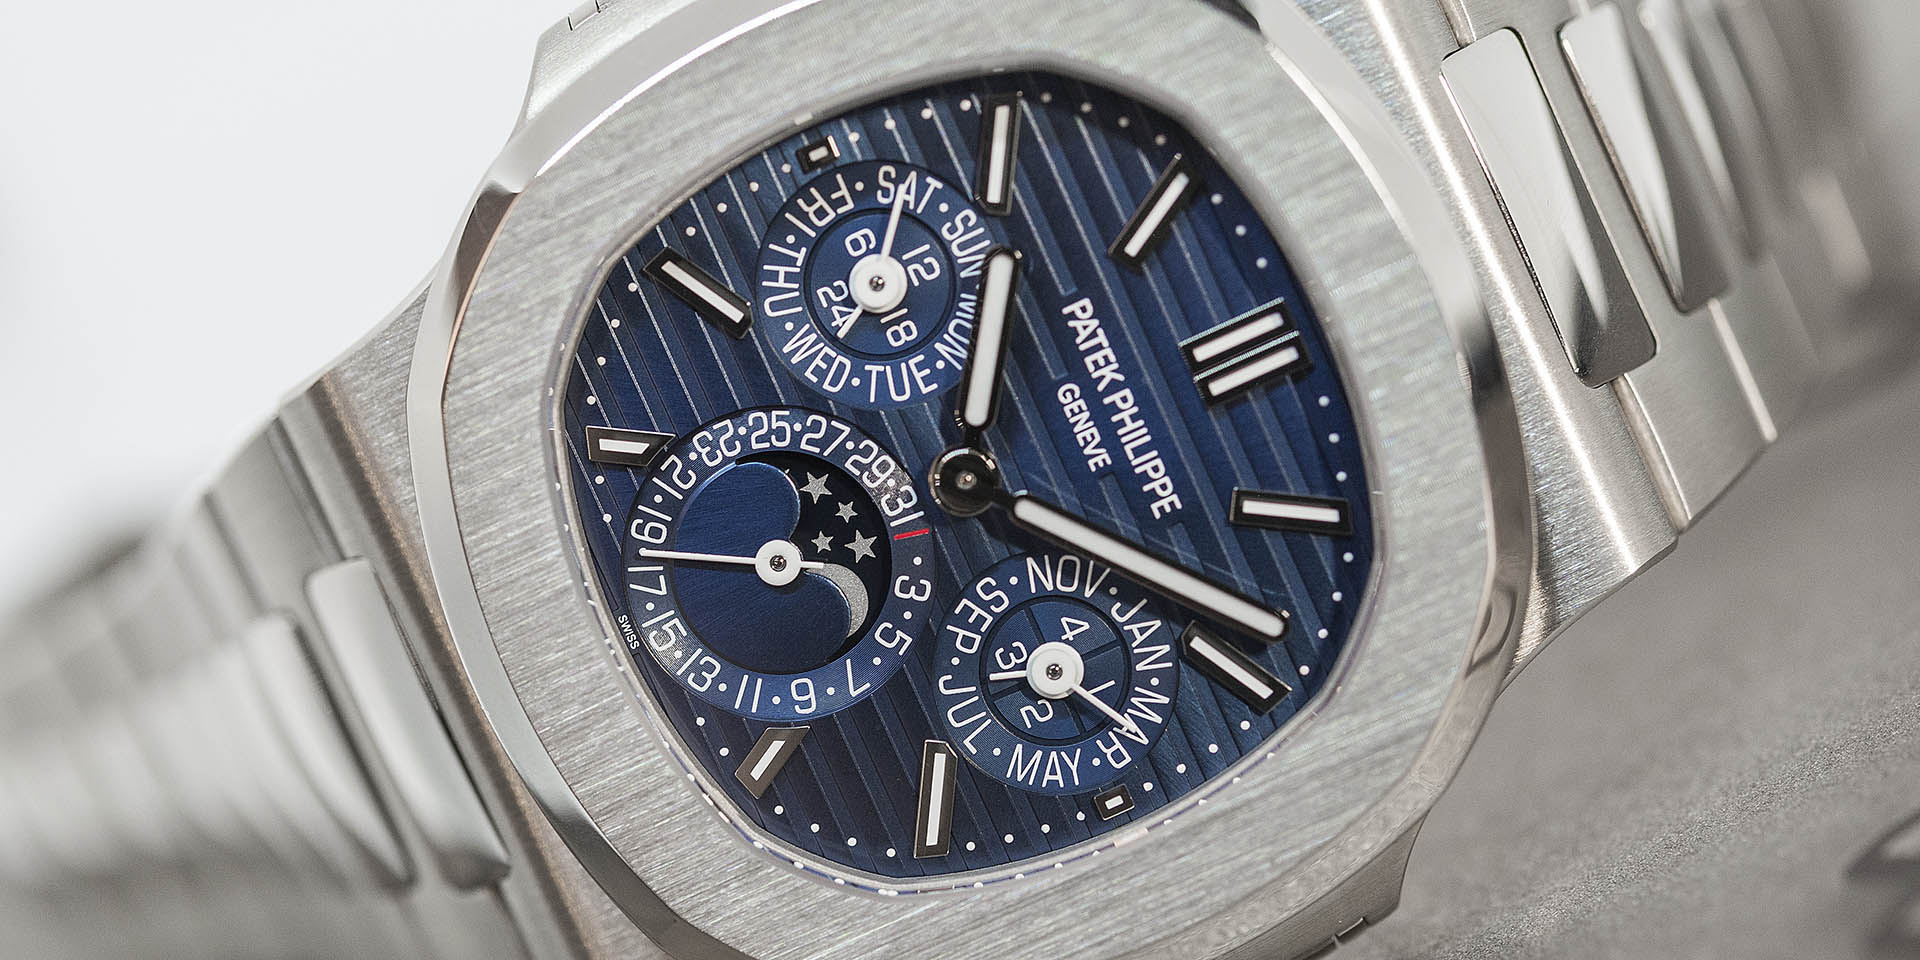 Most Expensive Watch In The World With Price >> 5740/1G-001 | Nautilus | Perpetual Calendar | Patek Philippe | Baselworld 2018 | Review | Horobox